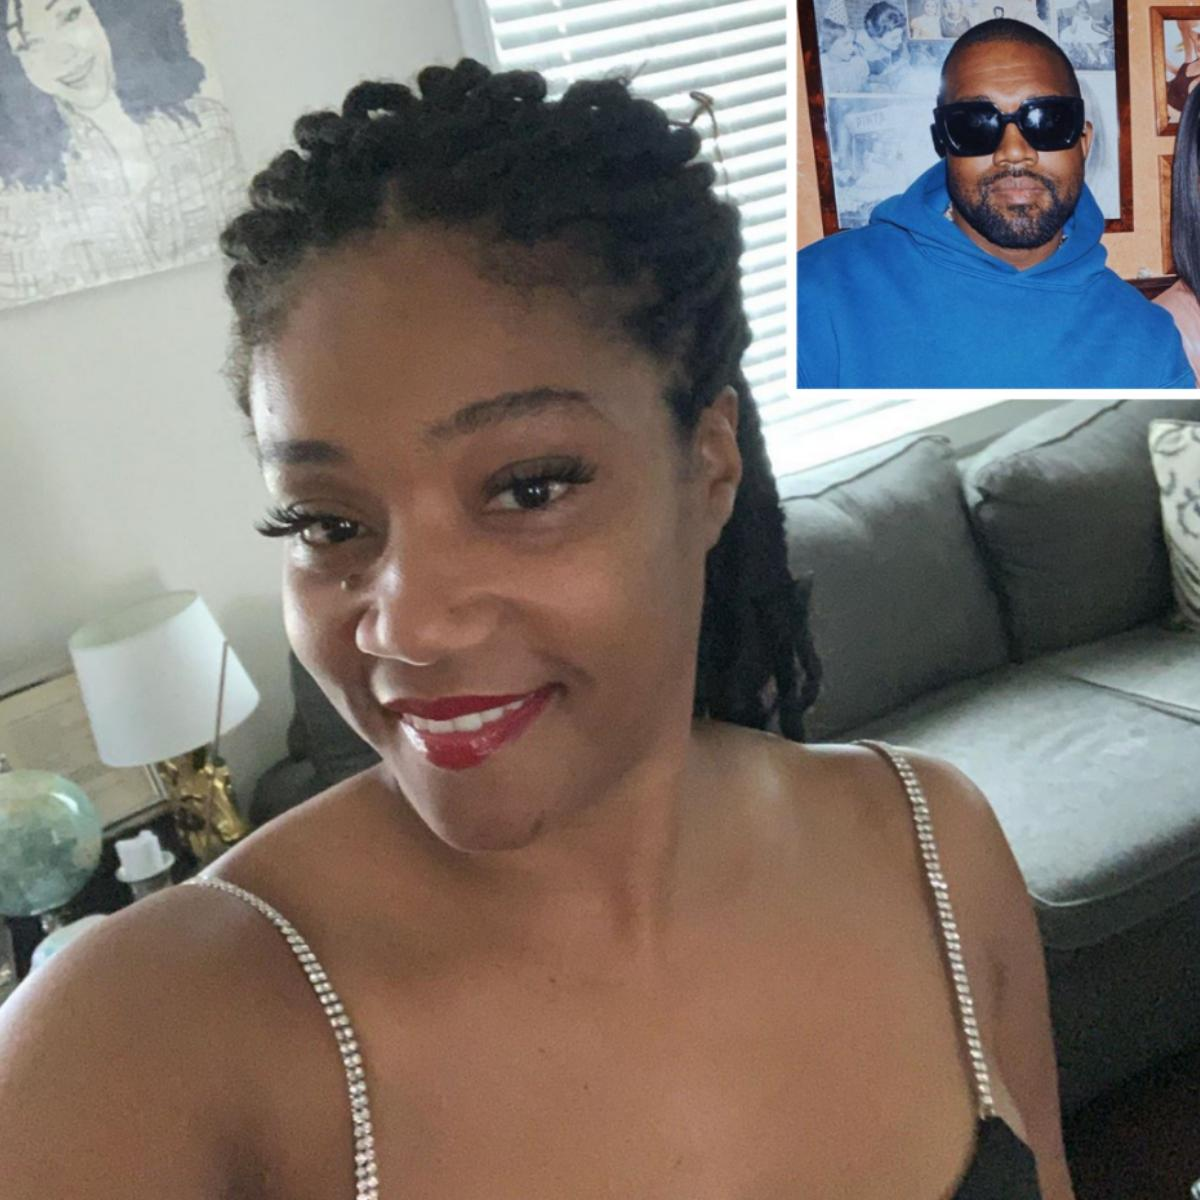 Tiffany Haddish Mocks Kanye West President 2020 Announcement